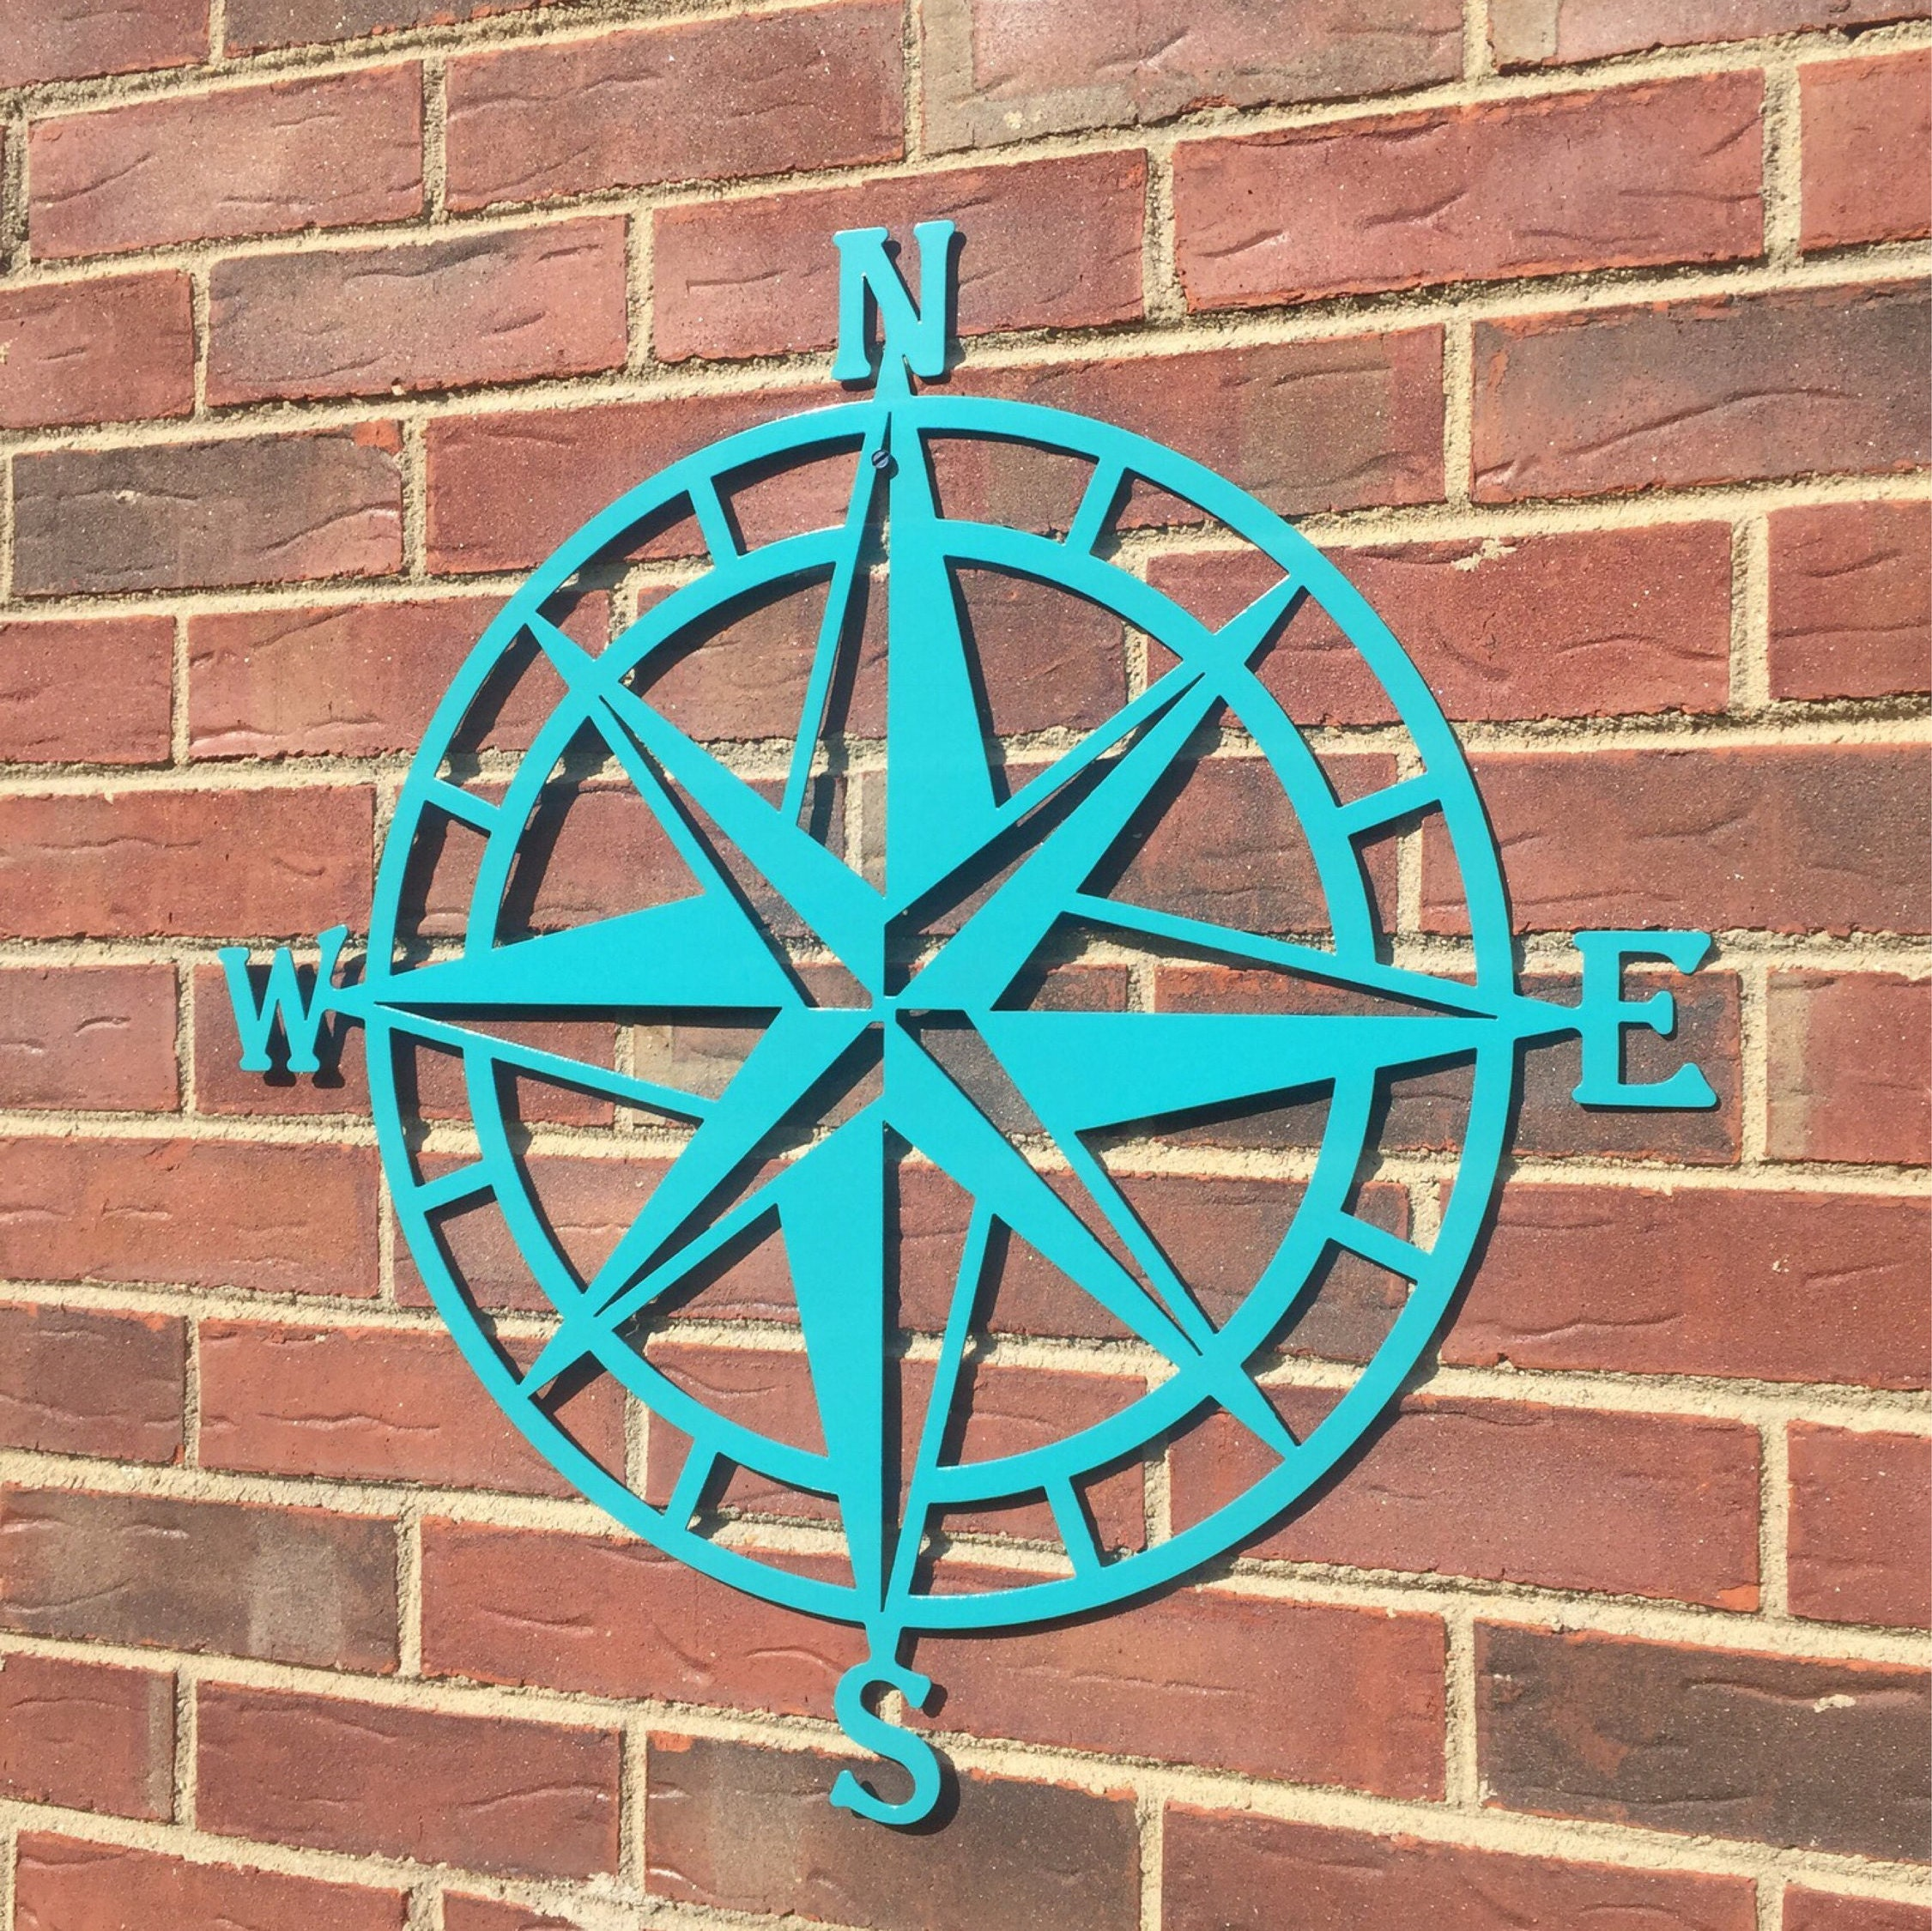 Steel nautical star compass wall art nautical decor metal details compass rose nautical metal wall amipublicfo Gallery